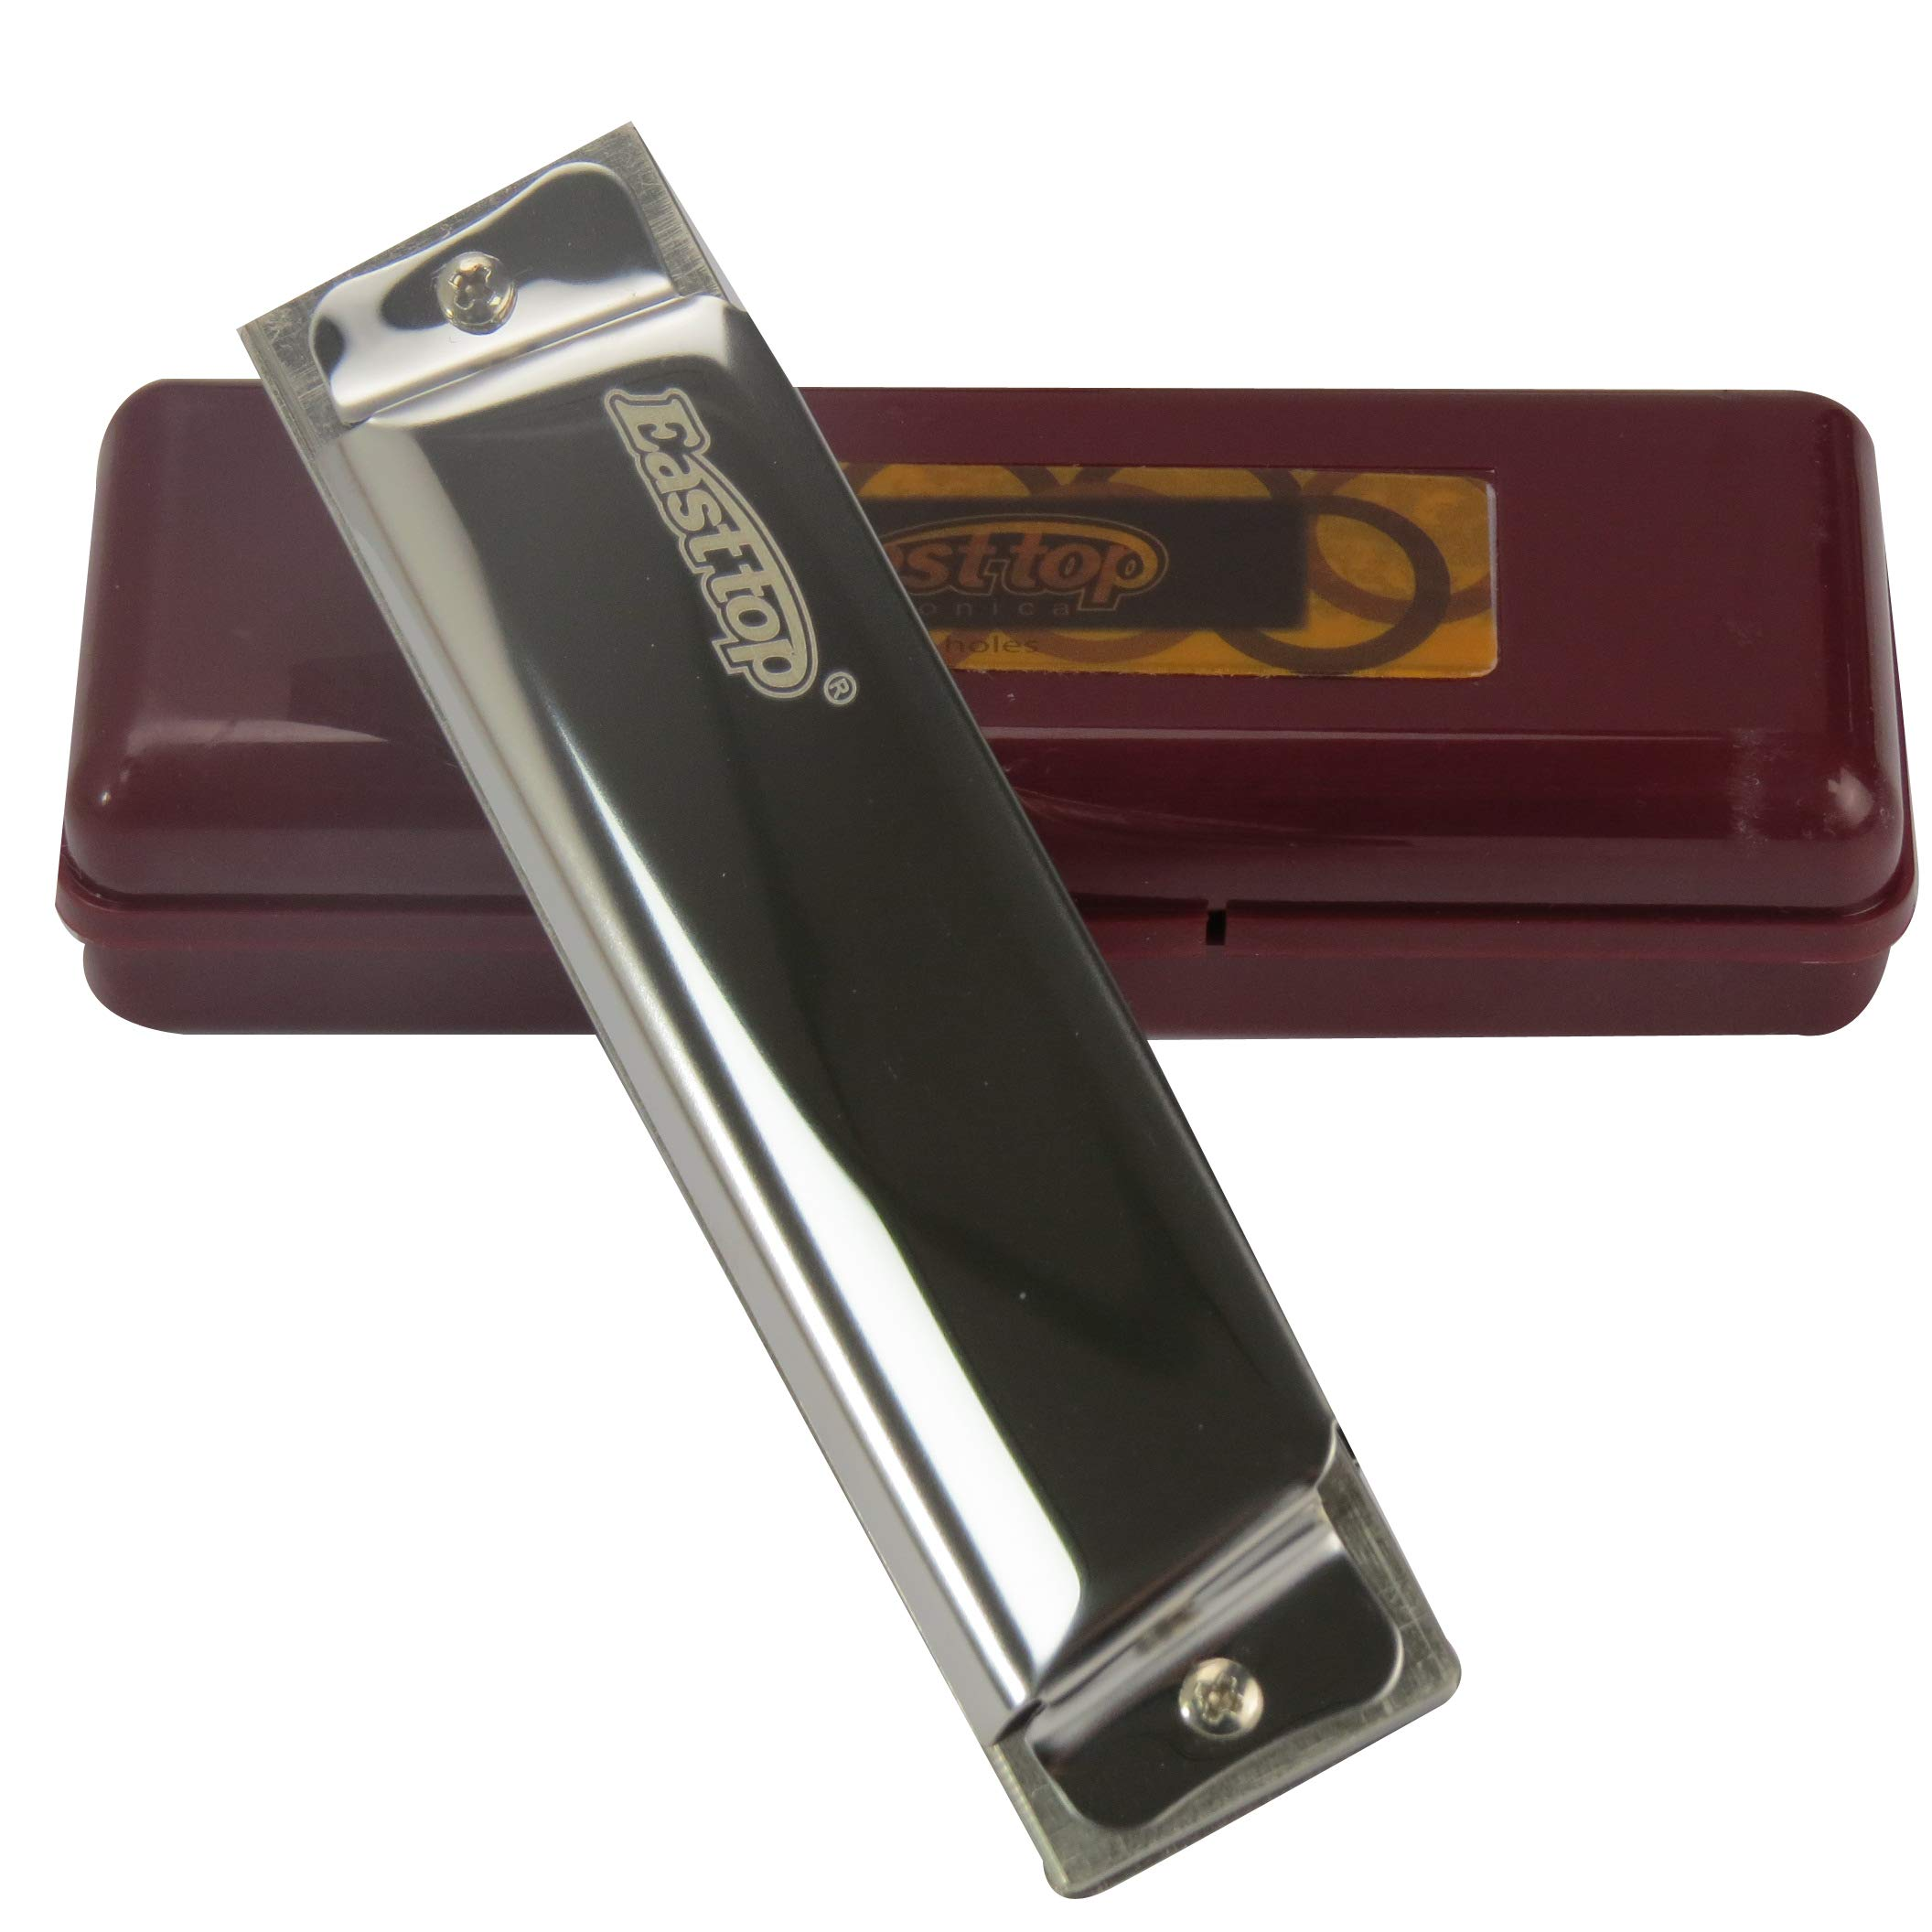 Easttop T10 Blues Mouth Organ Harmonica product image